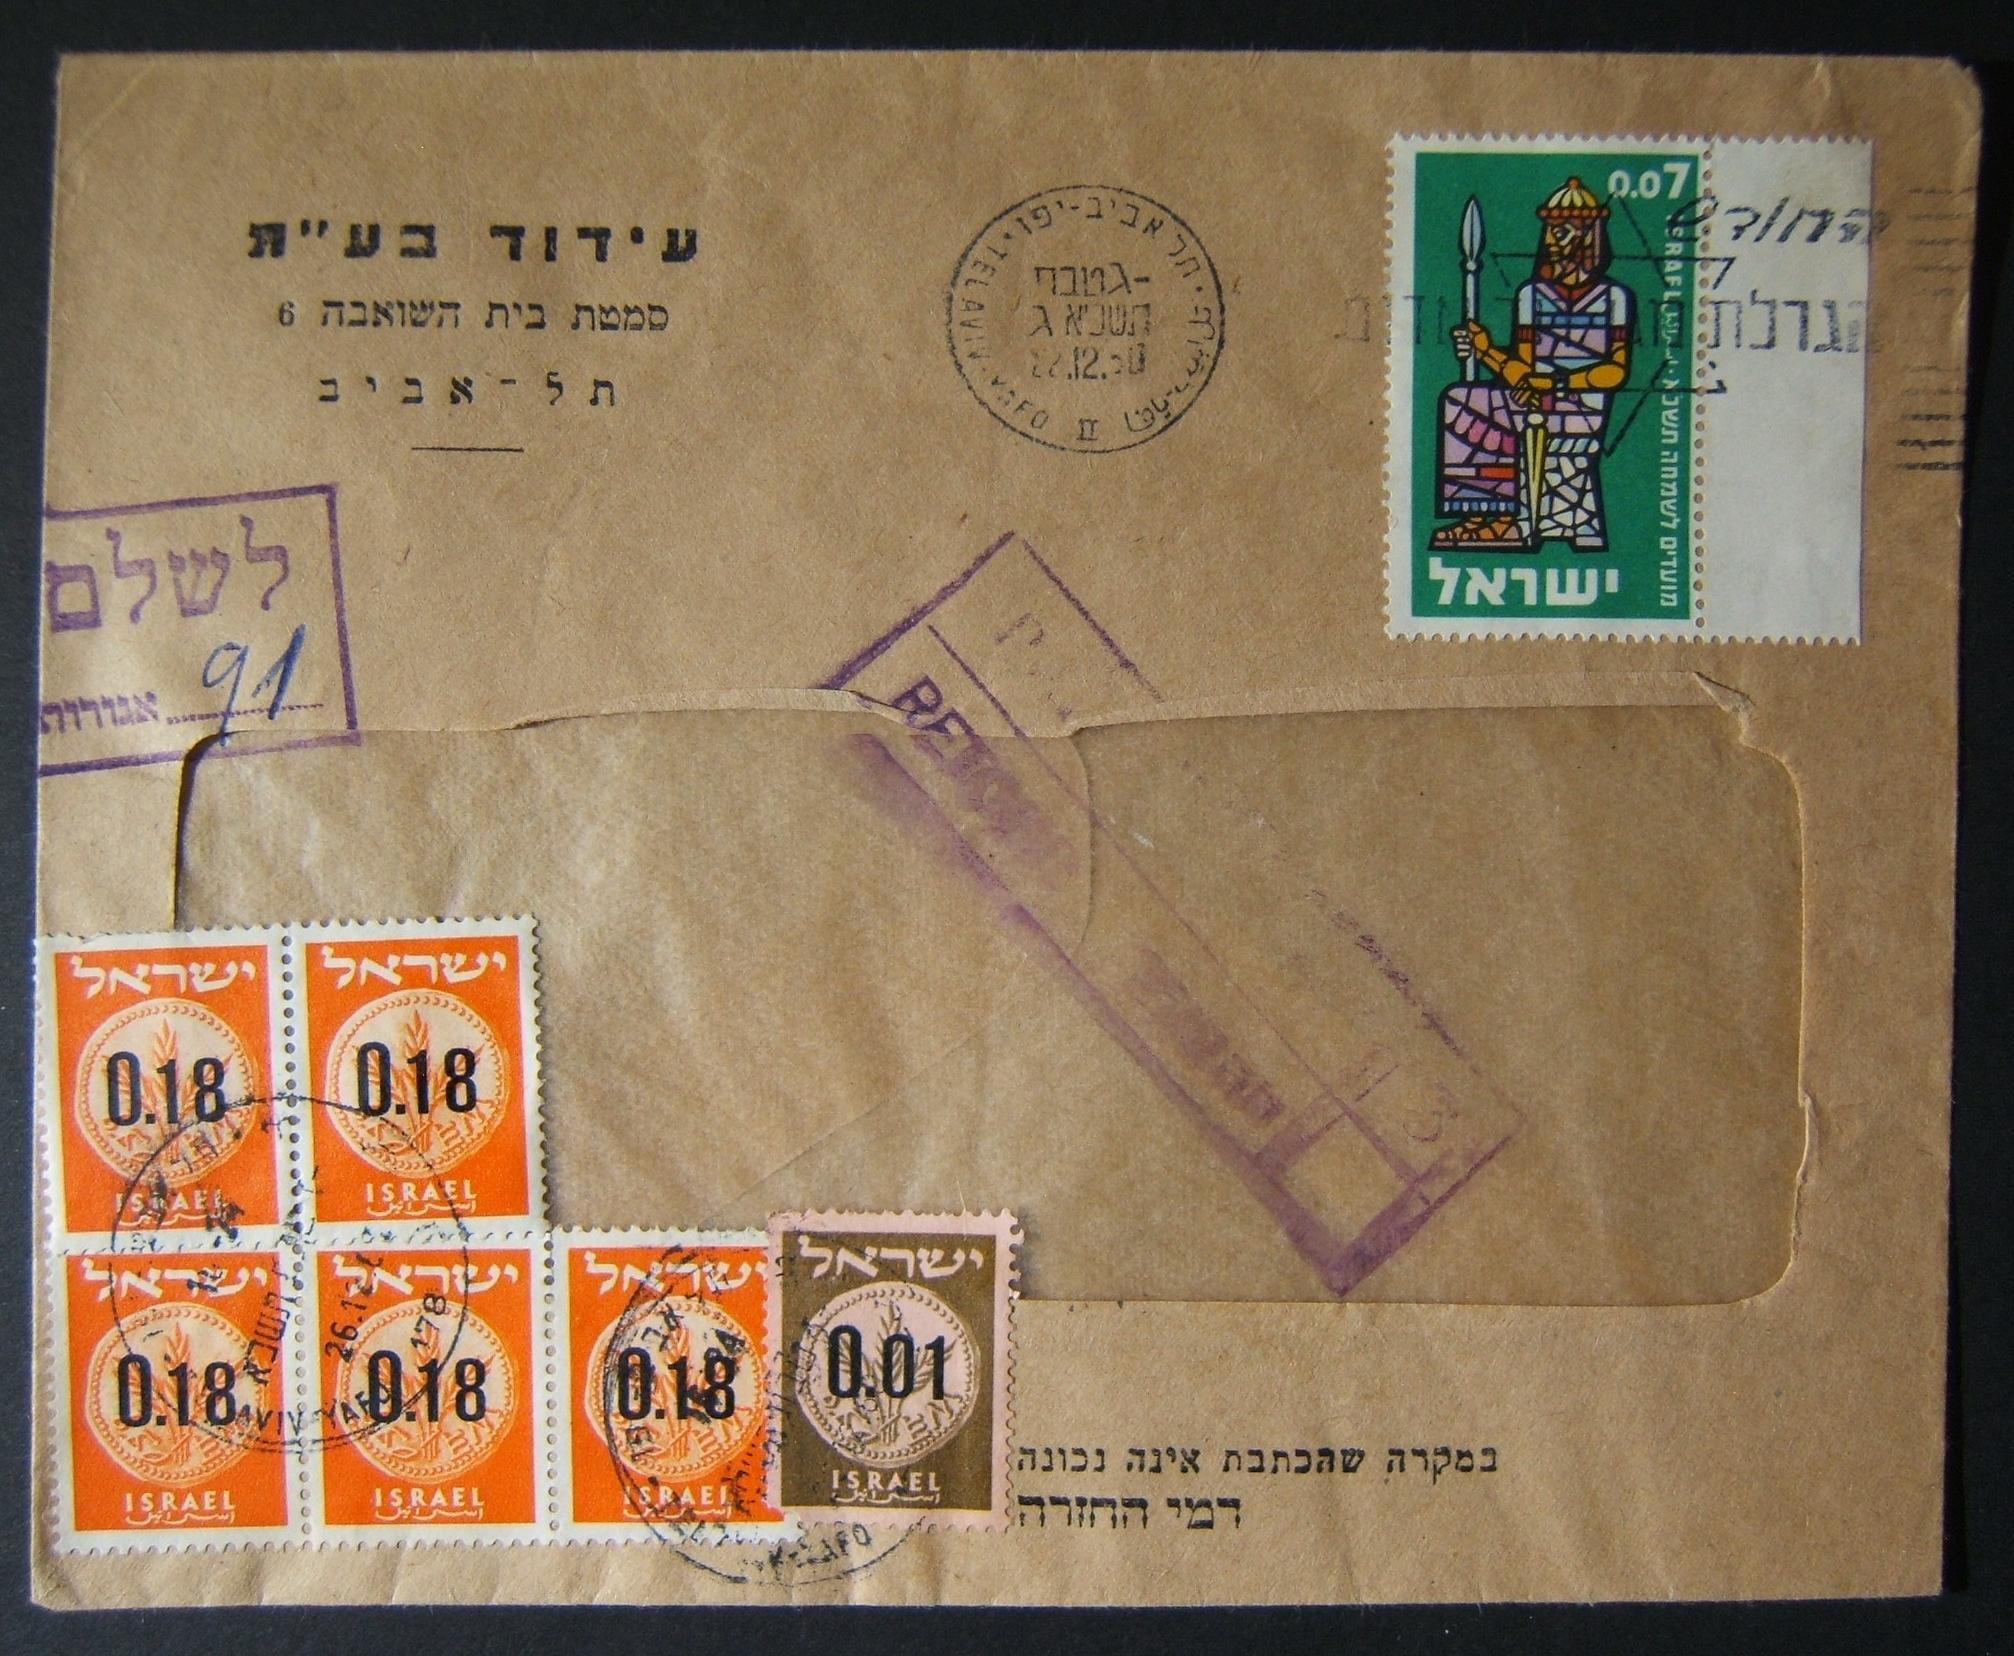 1960 domestic 'top of the pile' taxed franking: 22-12-60 printed matter commercial cover ex TLV branch of Idud Ltd. franked 7 Ag at the DO-10 period PM rate using 1960 New Year Ba1